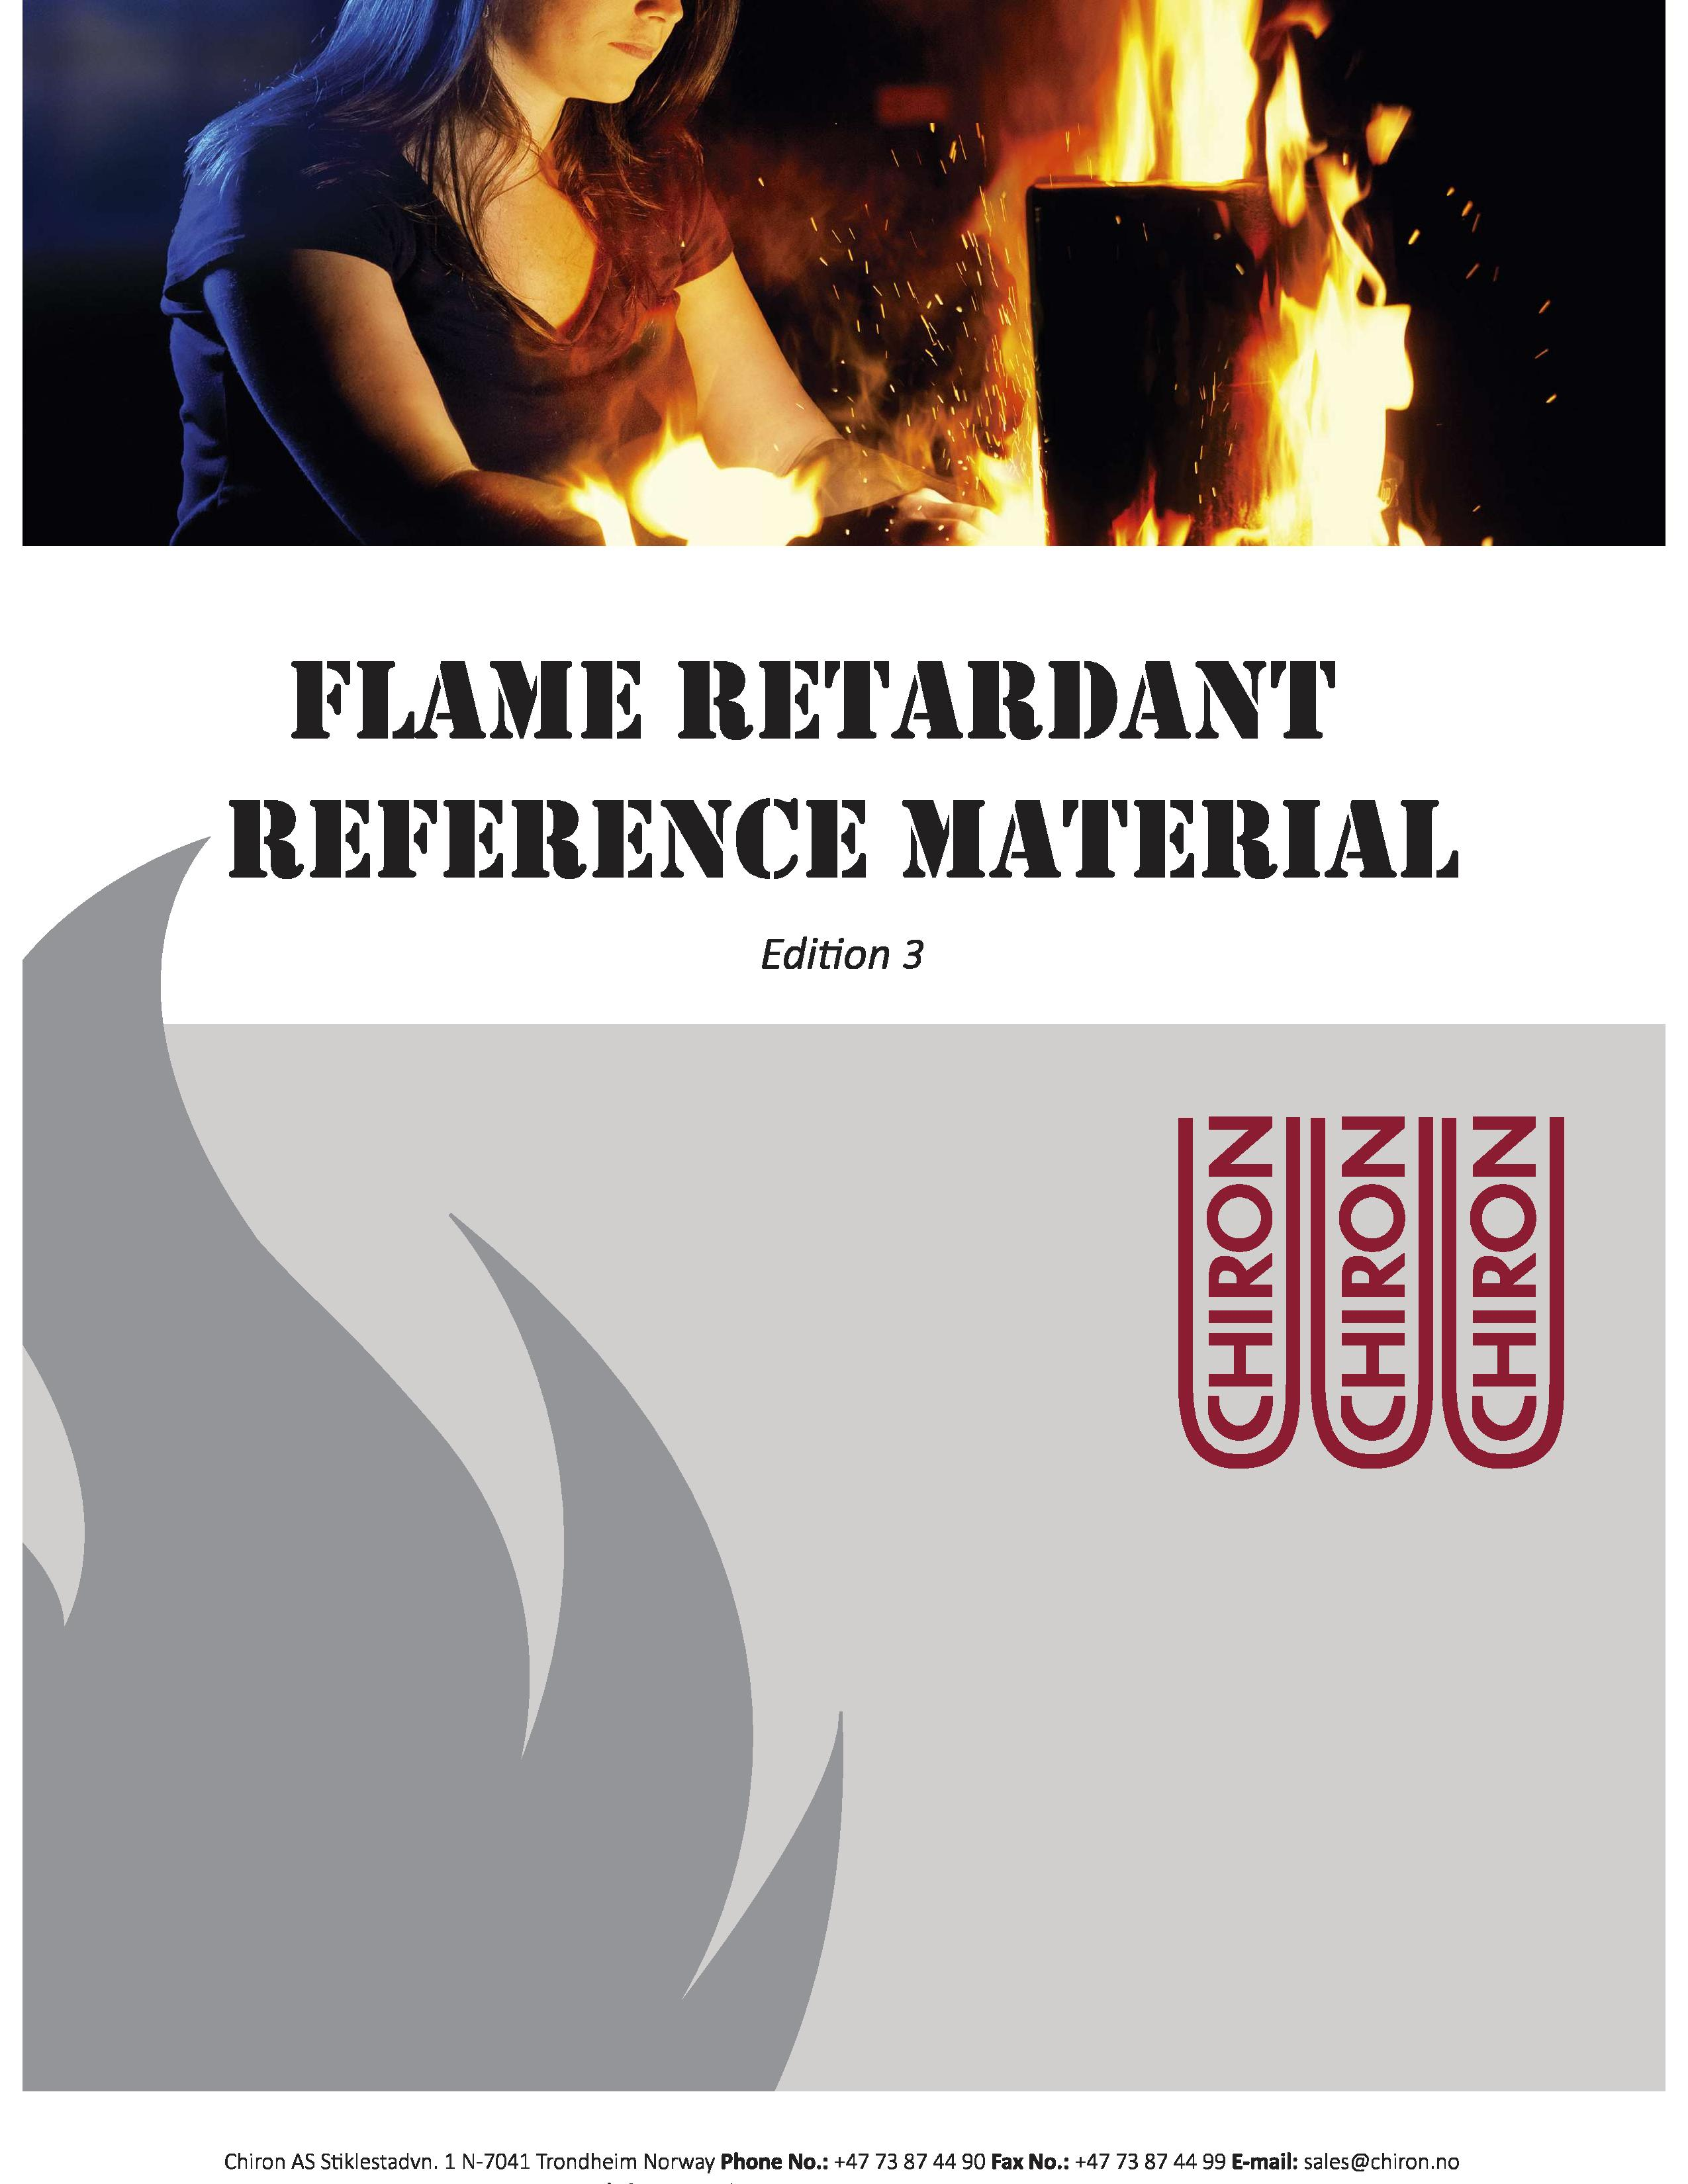 Flame Retardant Reference Materials, Edition 3